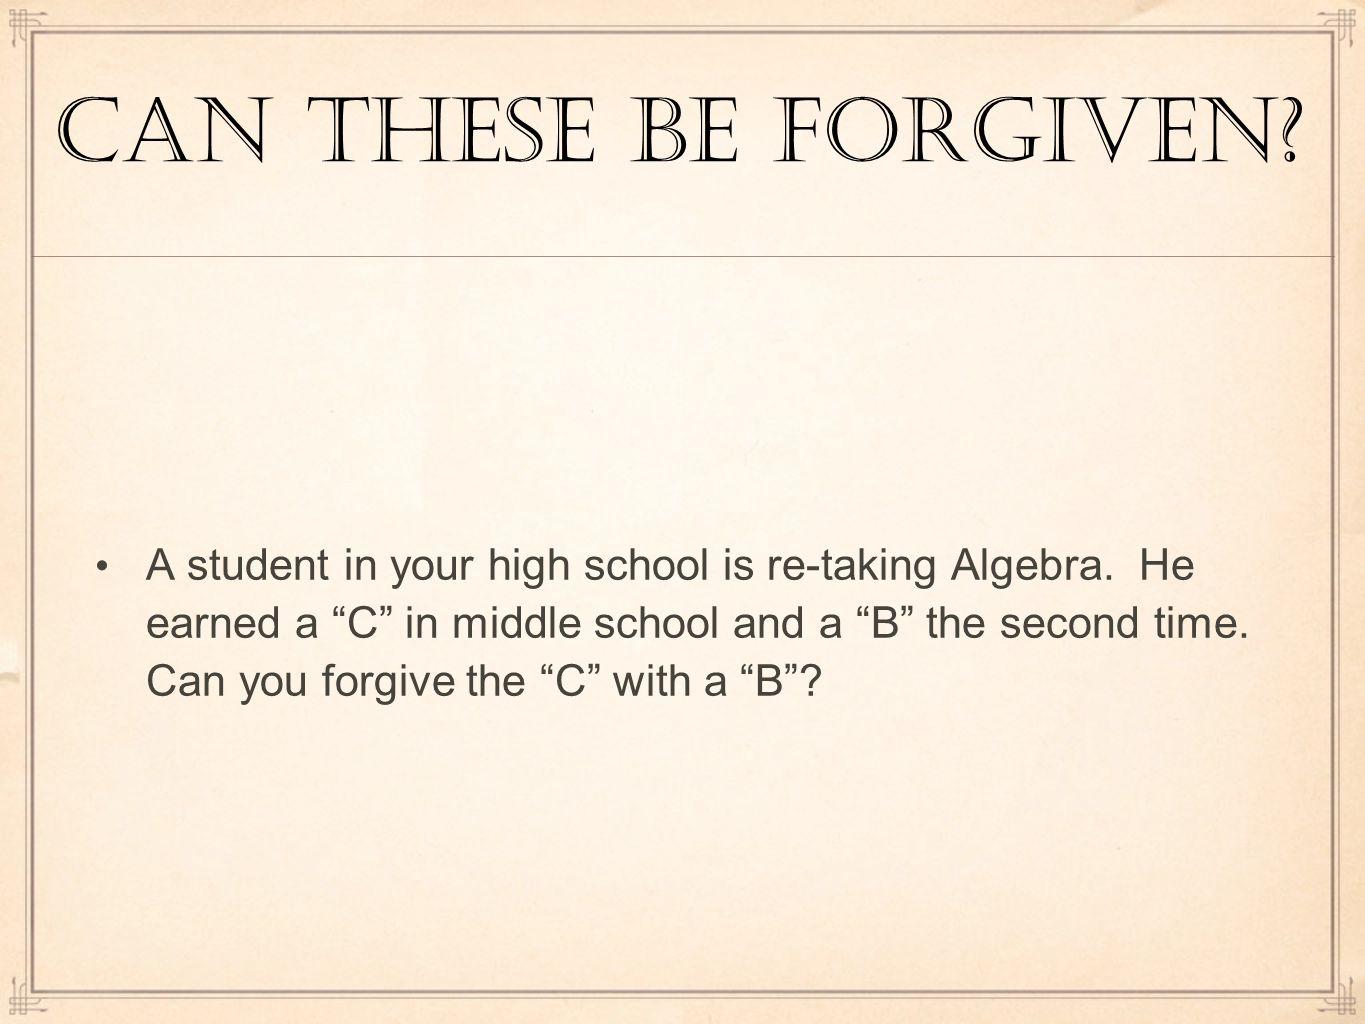 Can these be forgiven. A student in your high school is re-taking Algebra.